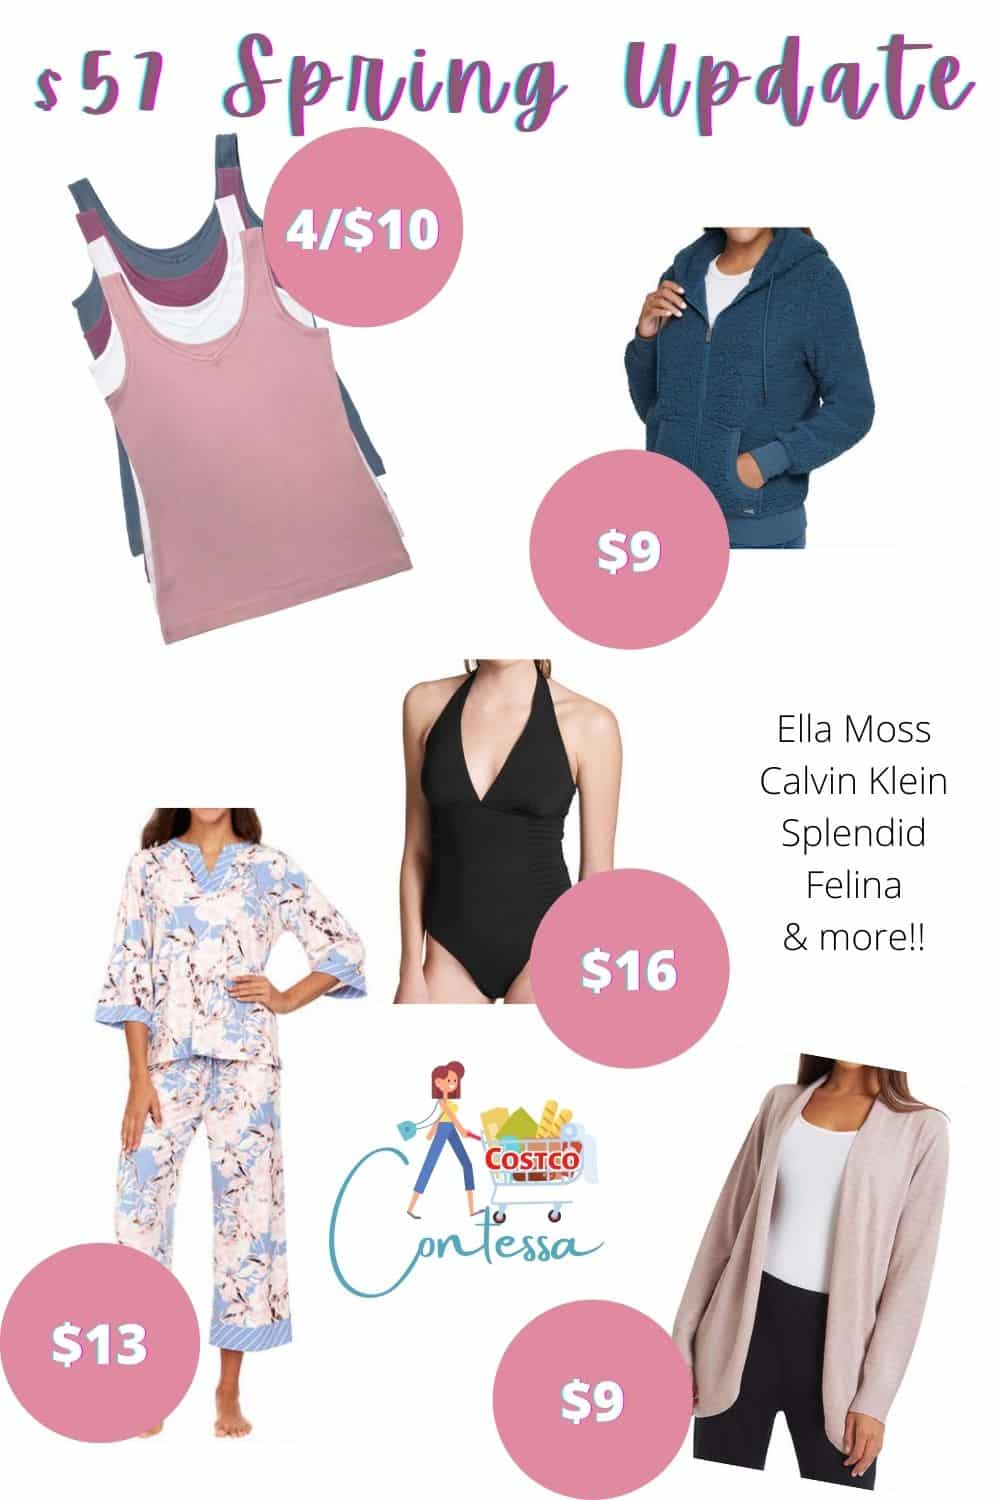 Get this $57 Women's Spring Wardrobe Update! Includes 4 tanks, cozy hoodie, pajamas, swimsuit and cardigan! All 8 pieces for $57 - we'll show you how and where to get this great wardrobe capsule deal! No coupons required!